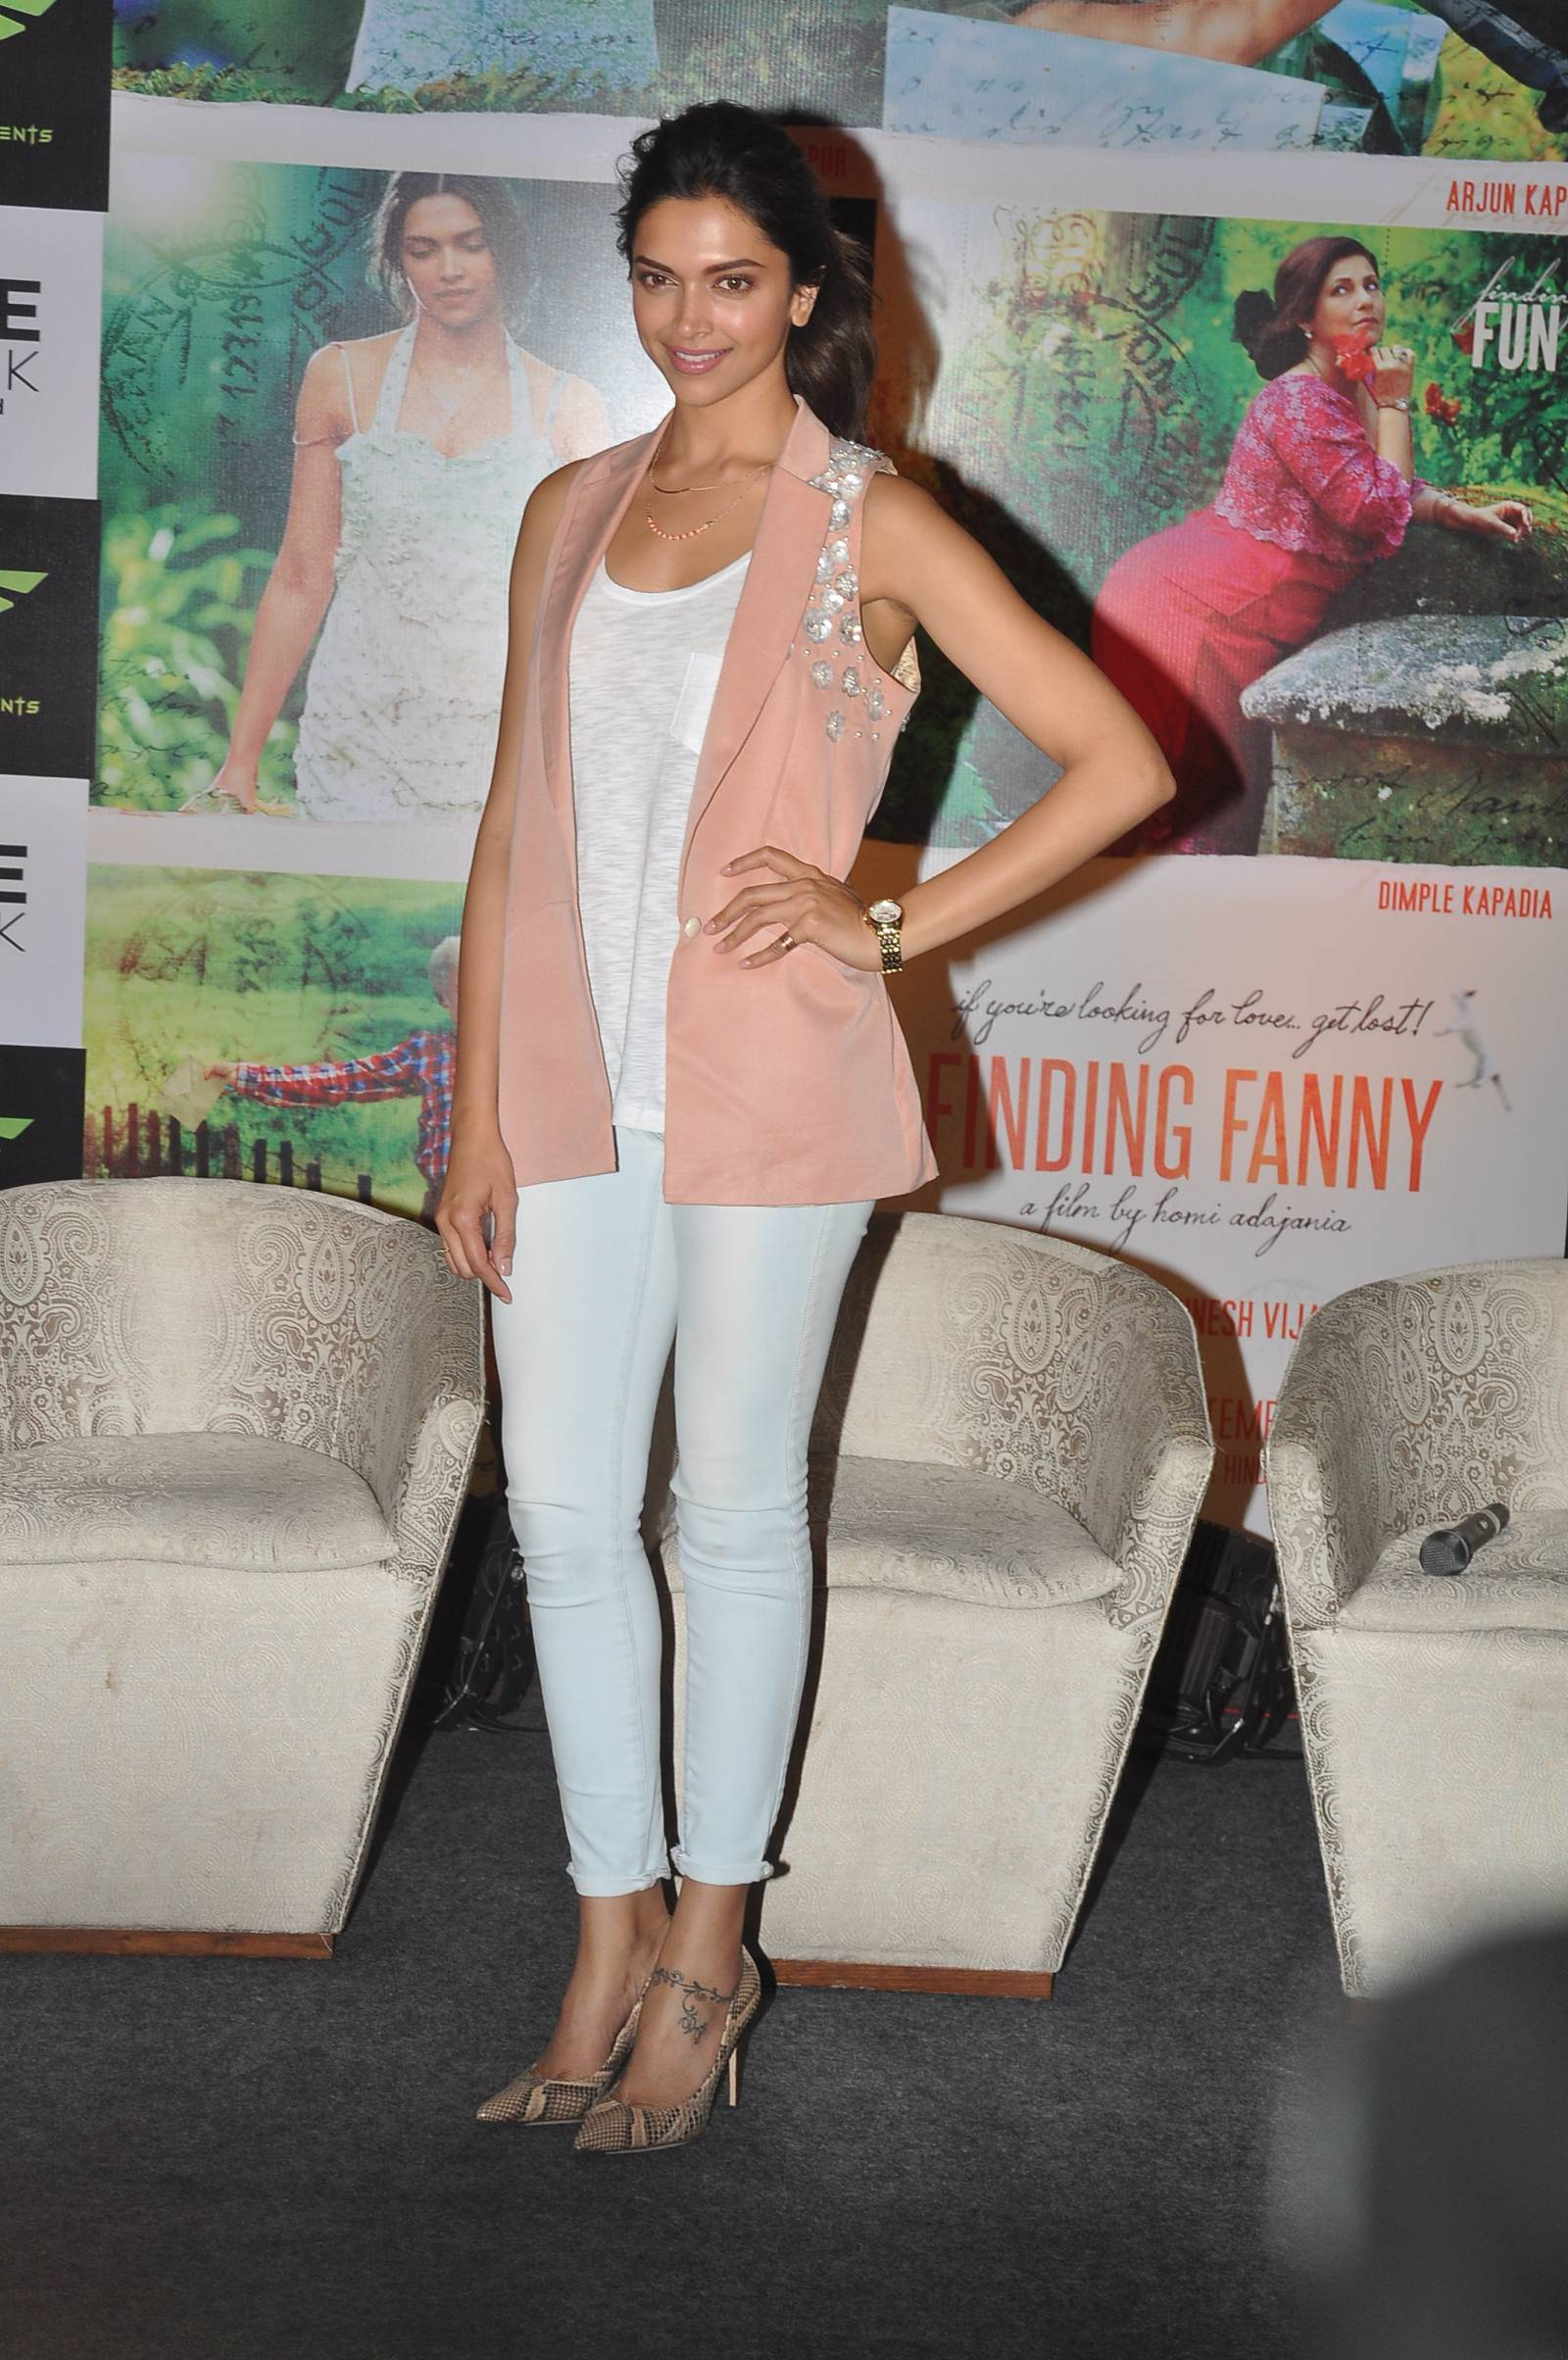 Finding fanny hyderabad (13)